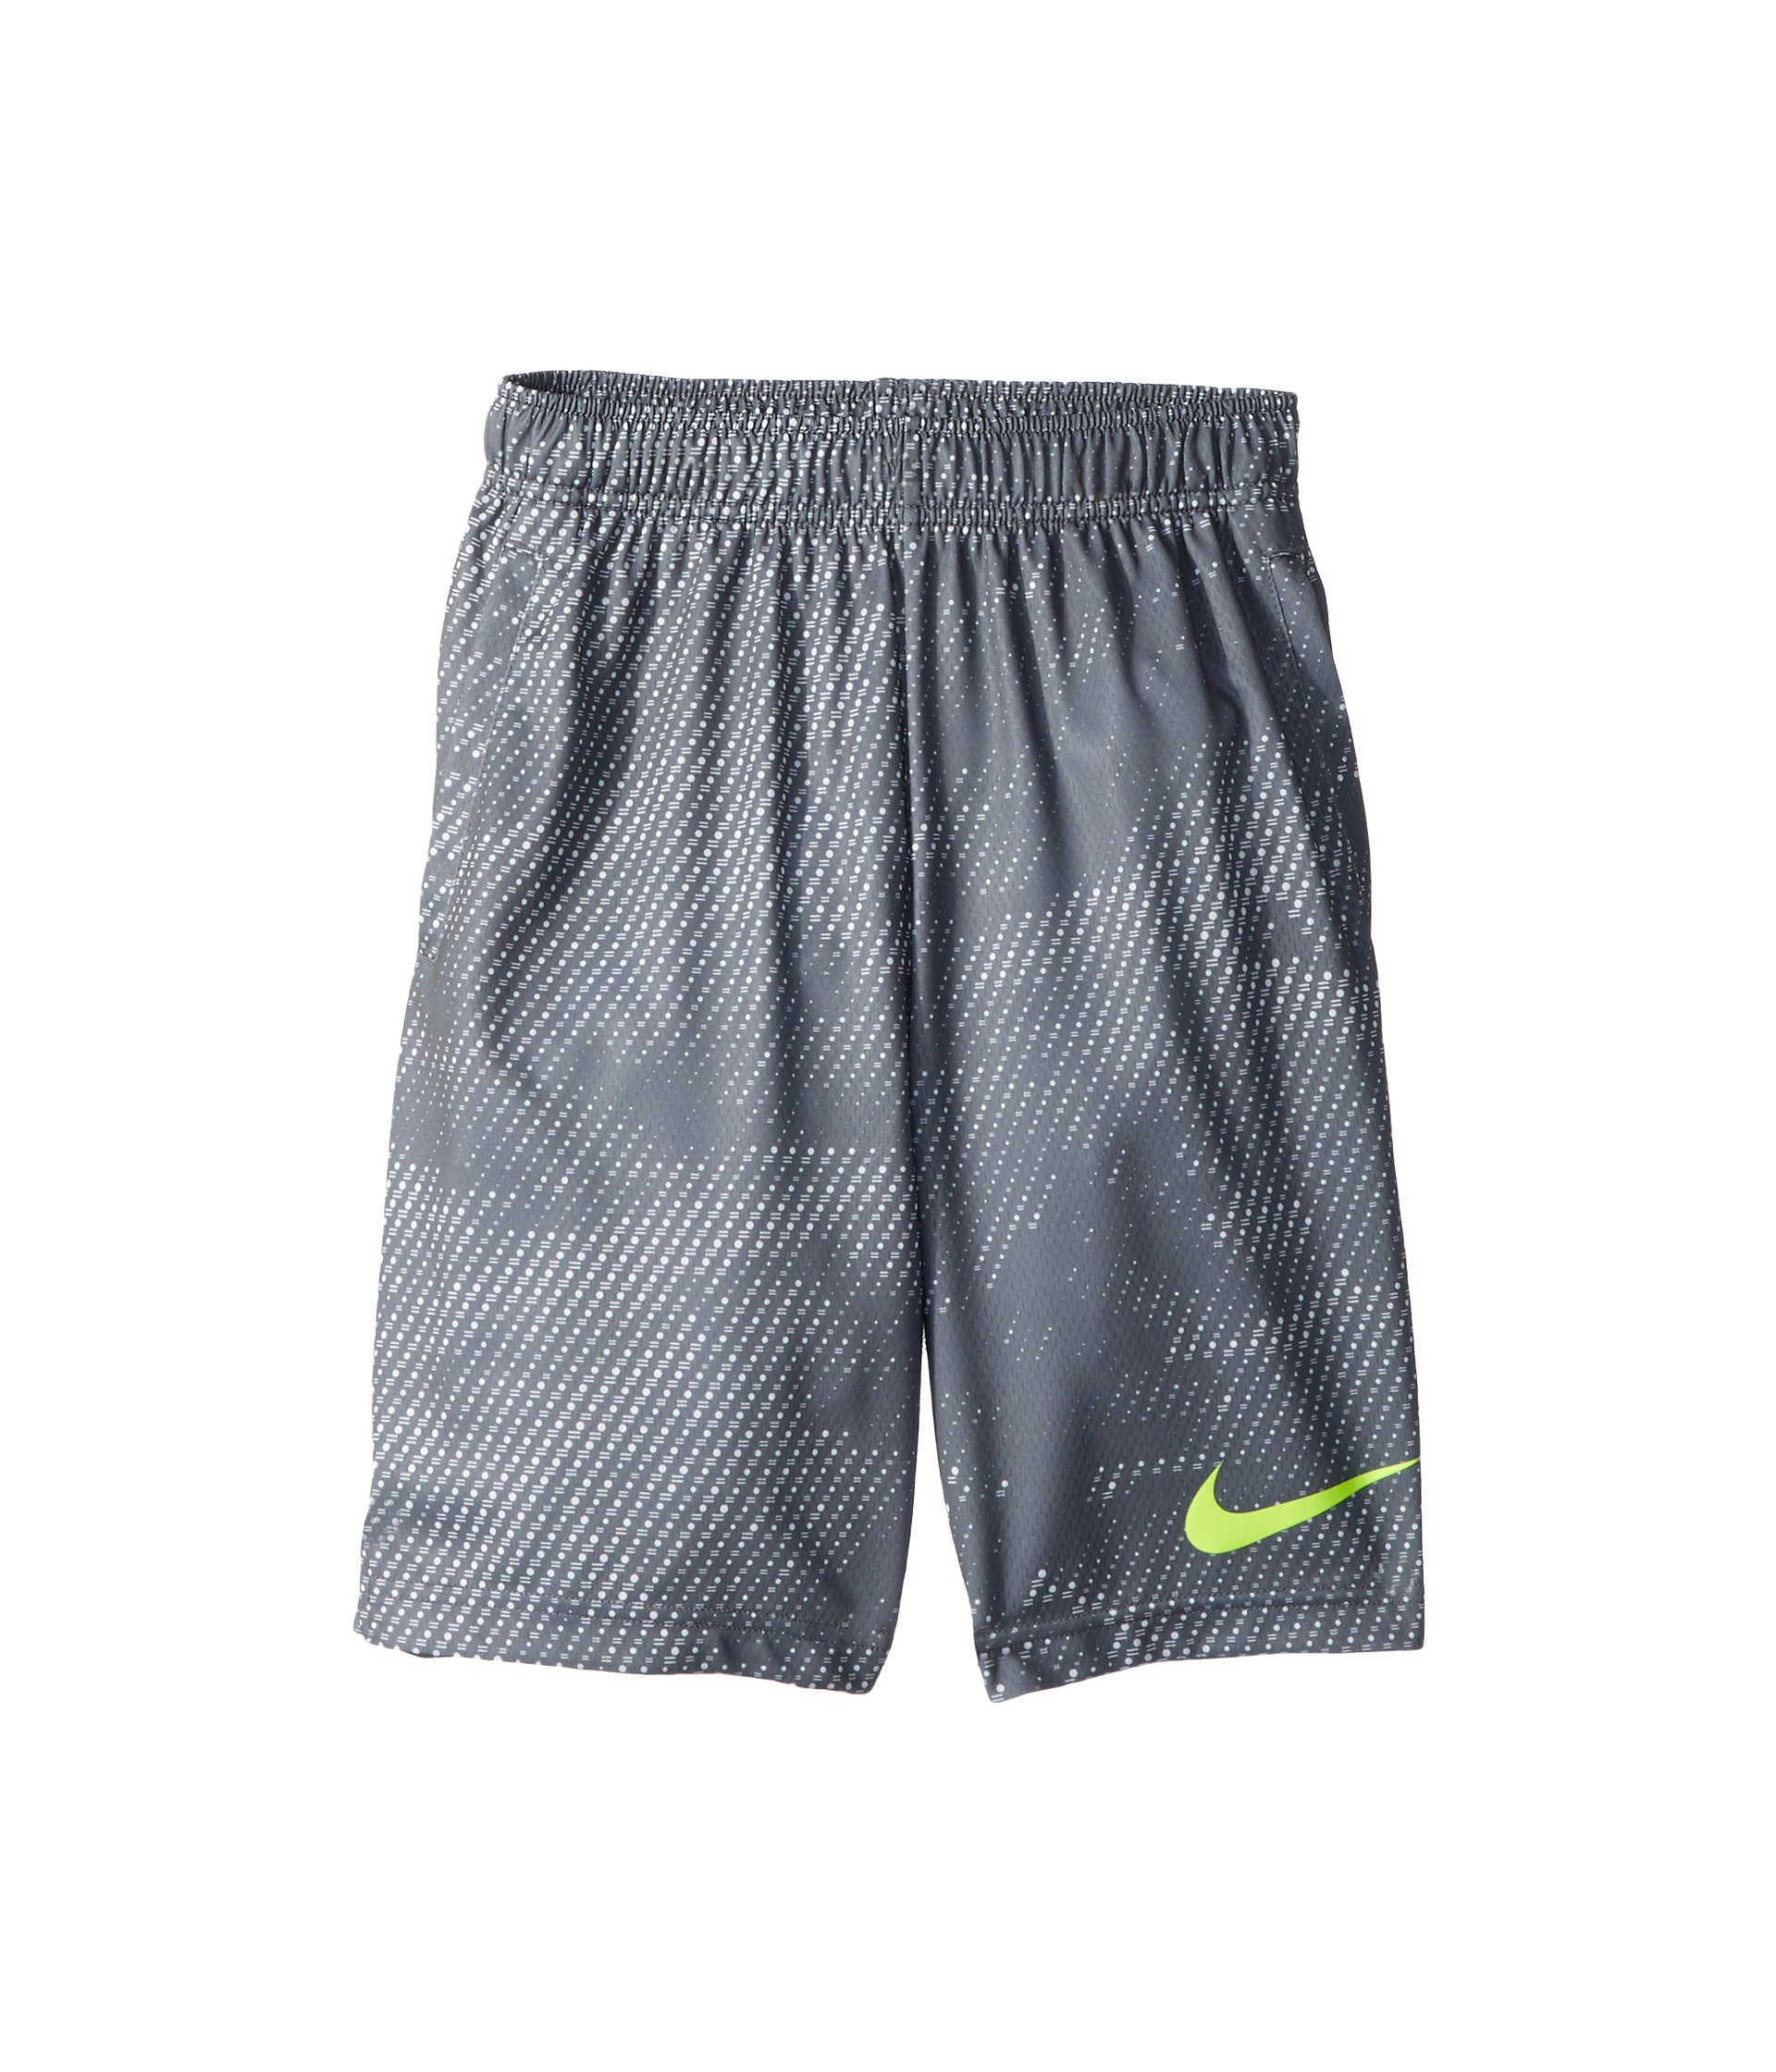 Nike Boy's Athletic Dry Printed Fly Comfortable Elastic Training Shorts with Pockets (Cool Grey/Medium)